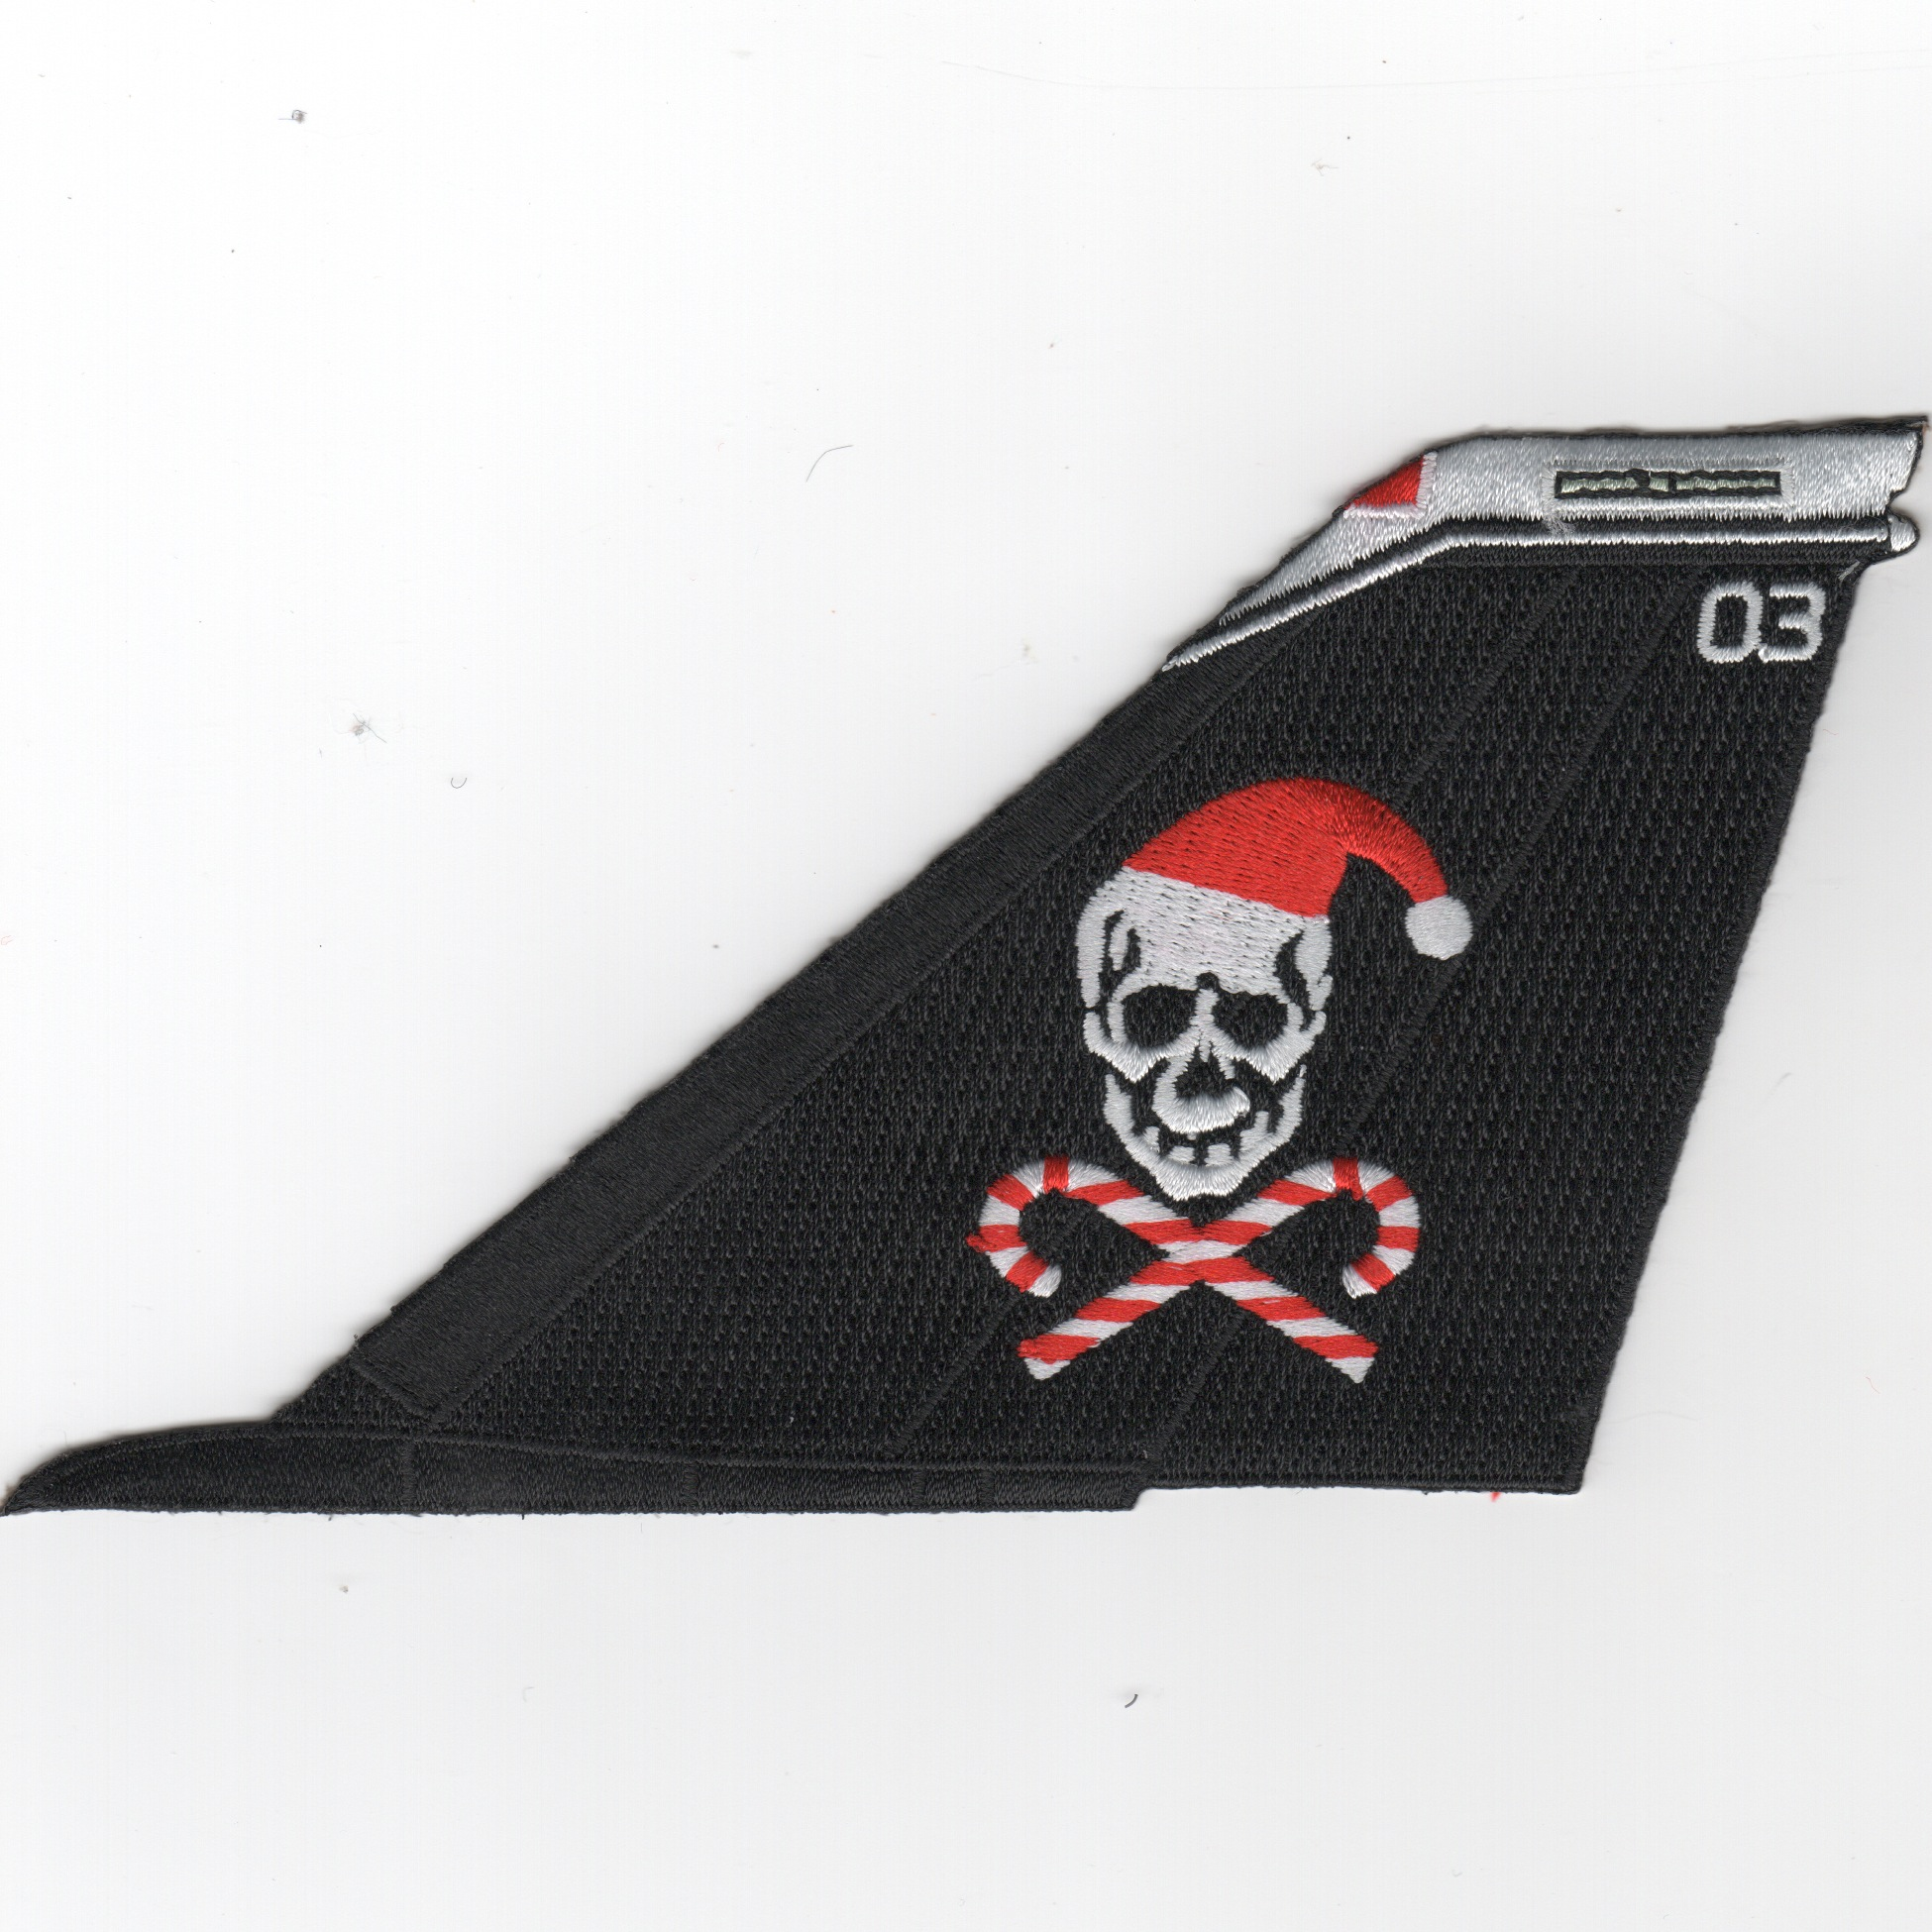 VF-103 F-14 Tailfin (No Text/Blk/Christmas)